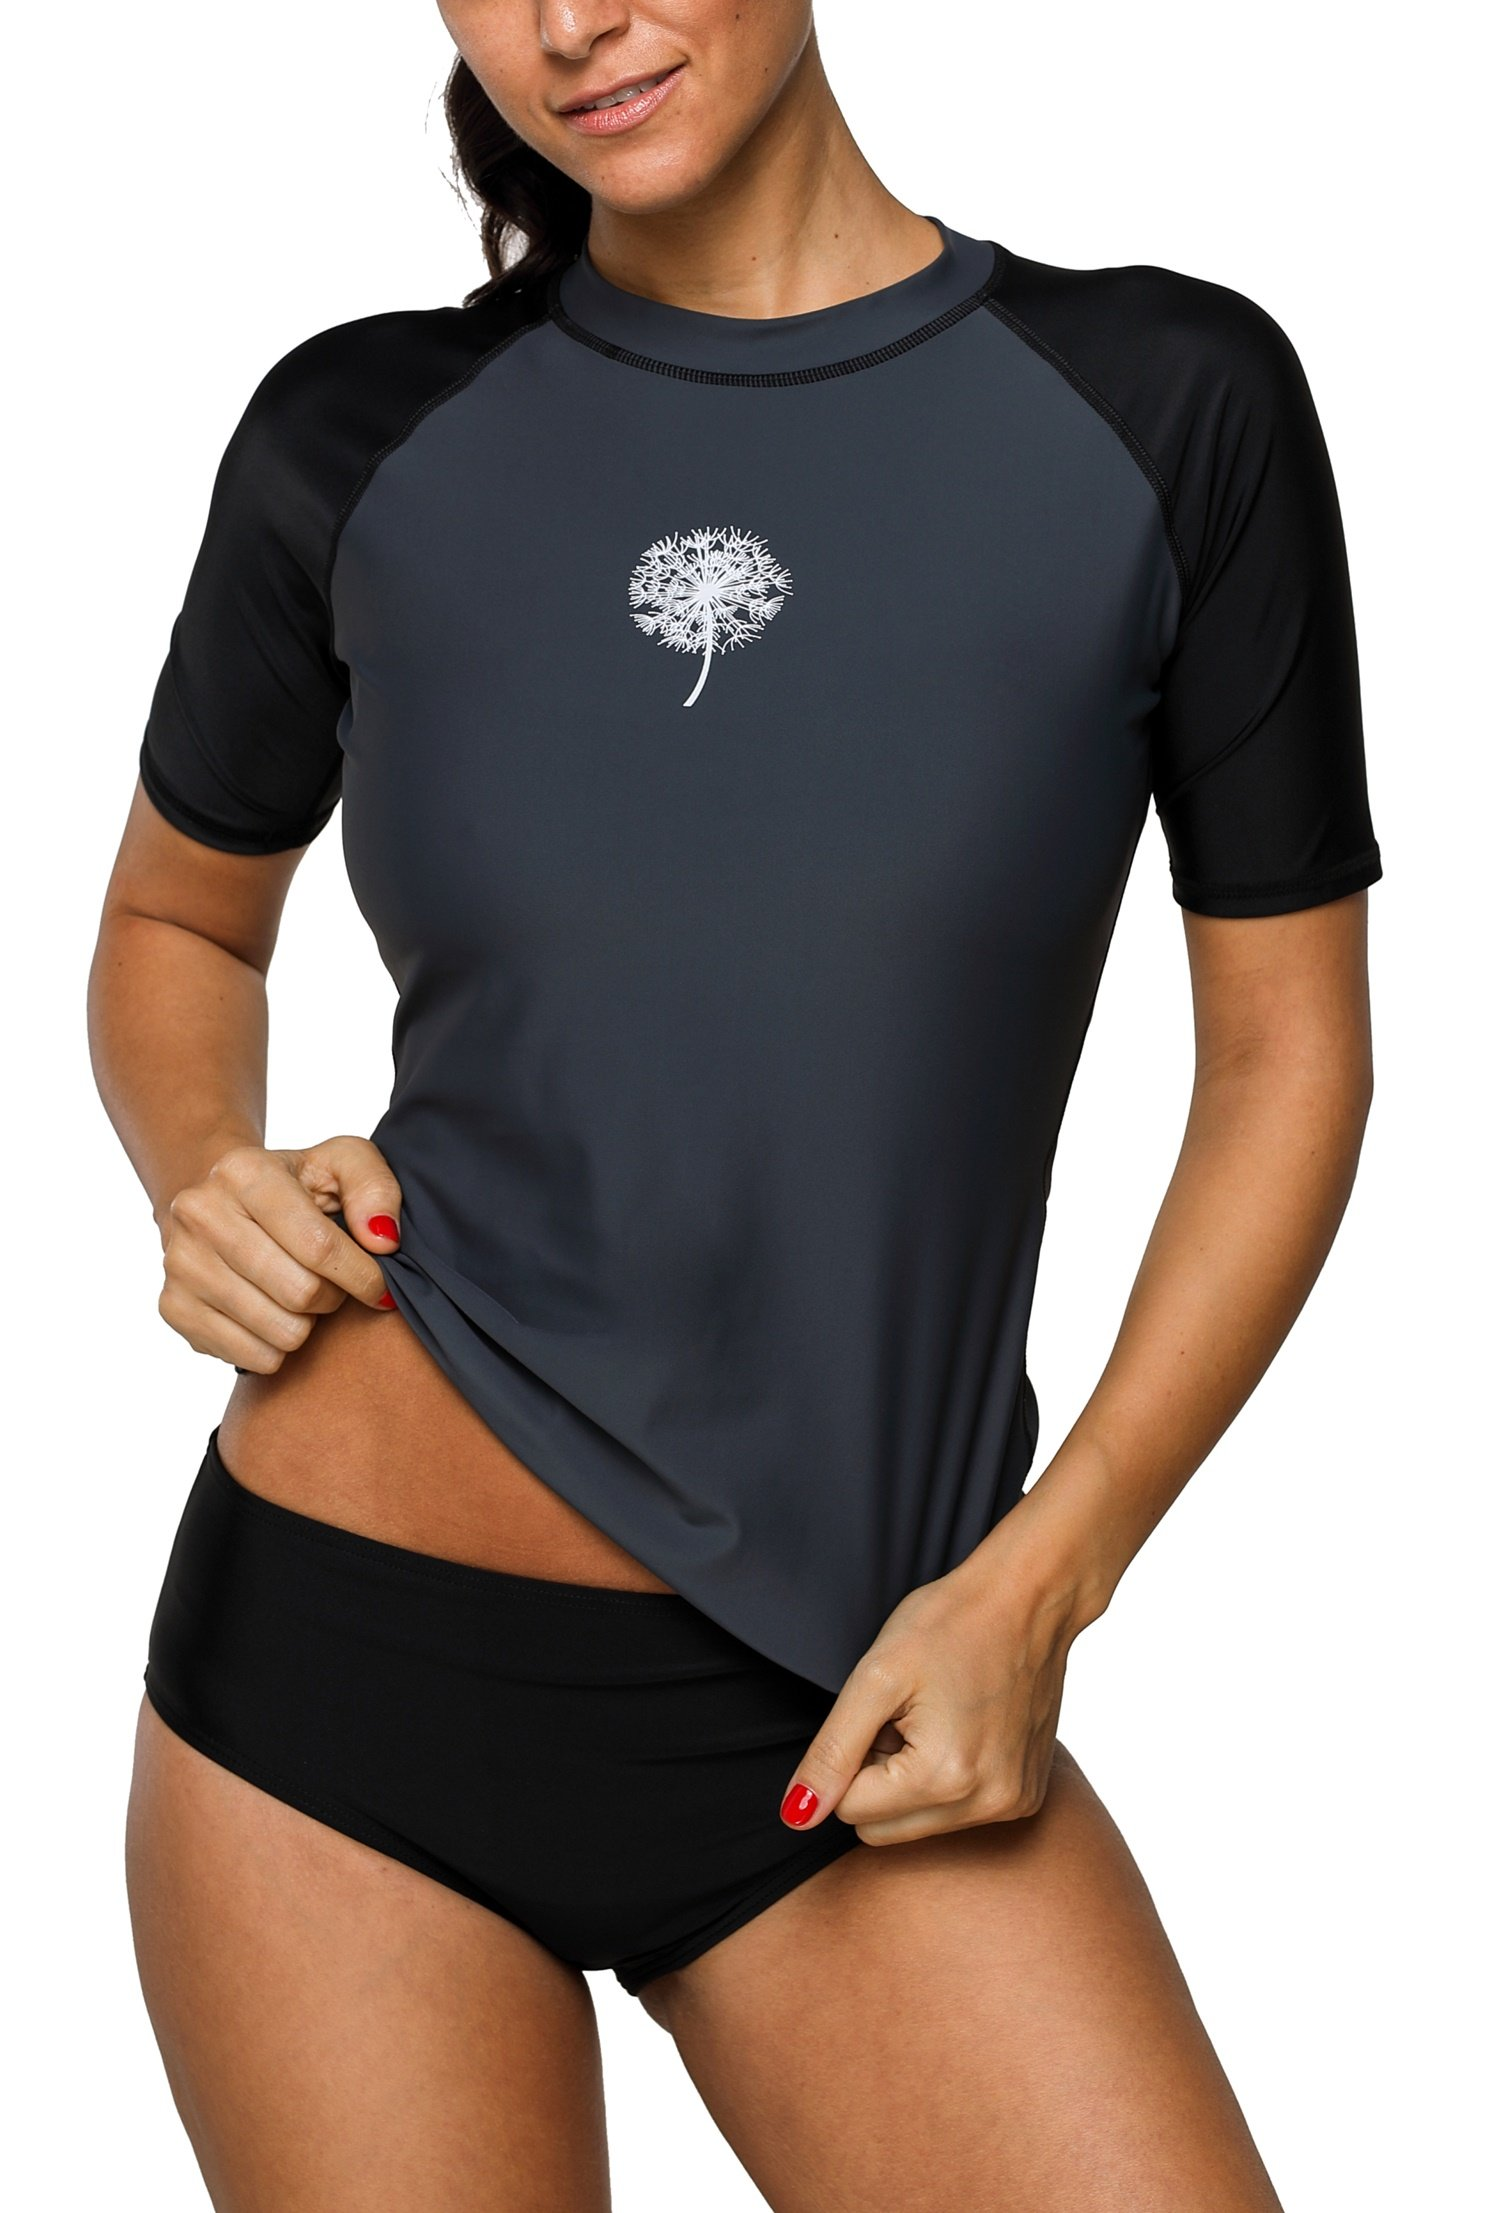 Anwell Womens UPF50+ Short Sleeve Rash Gurad UV Surfing Athletic Top Black XL by Anwell